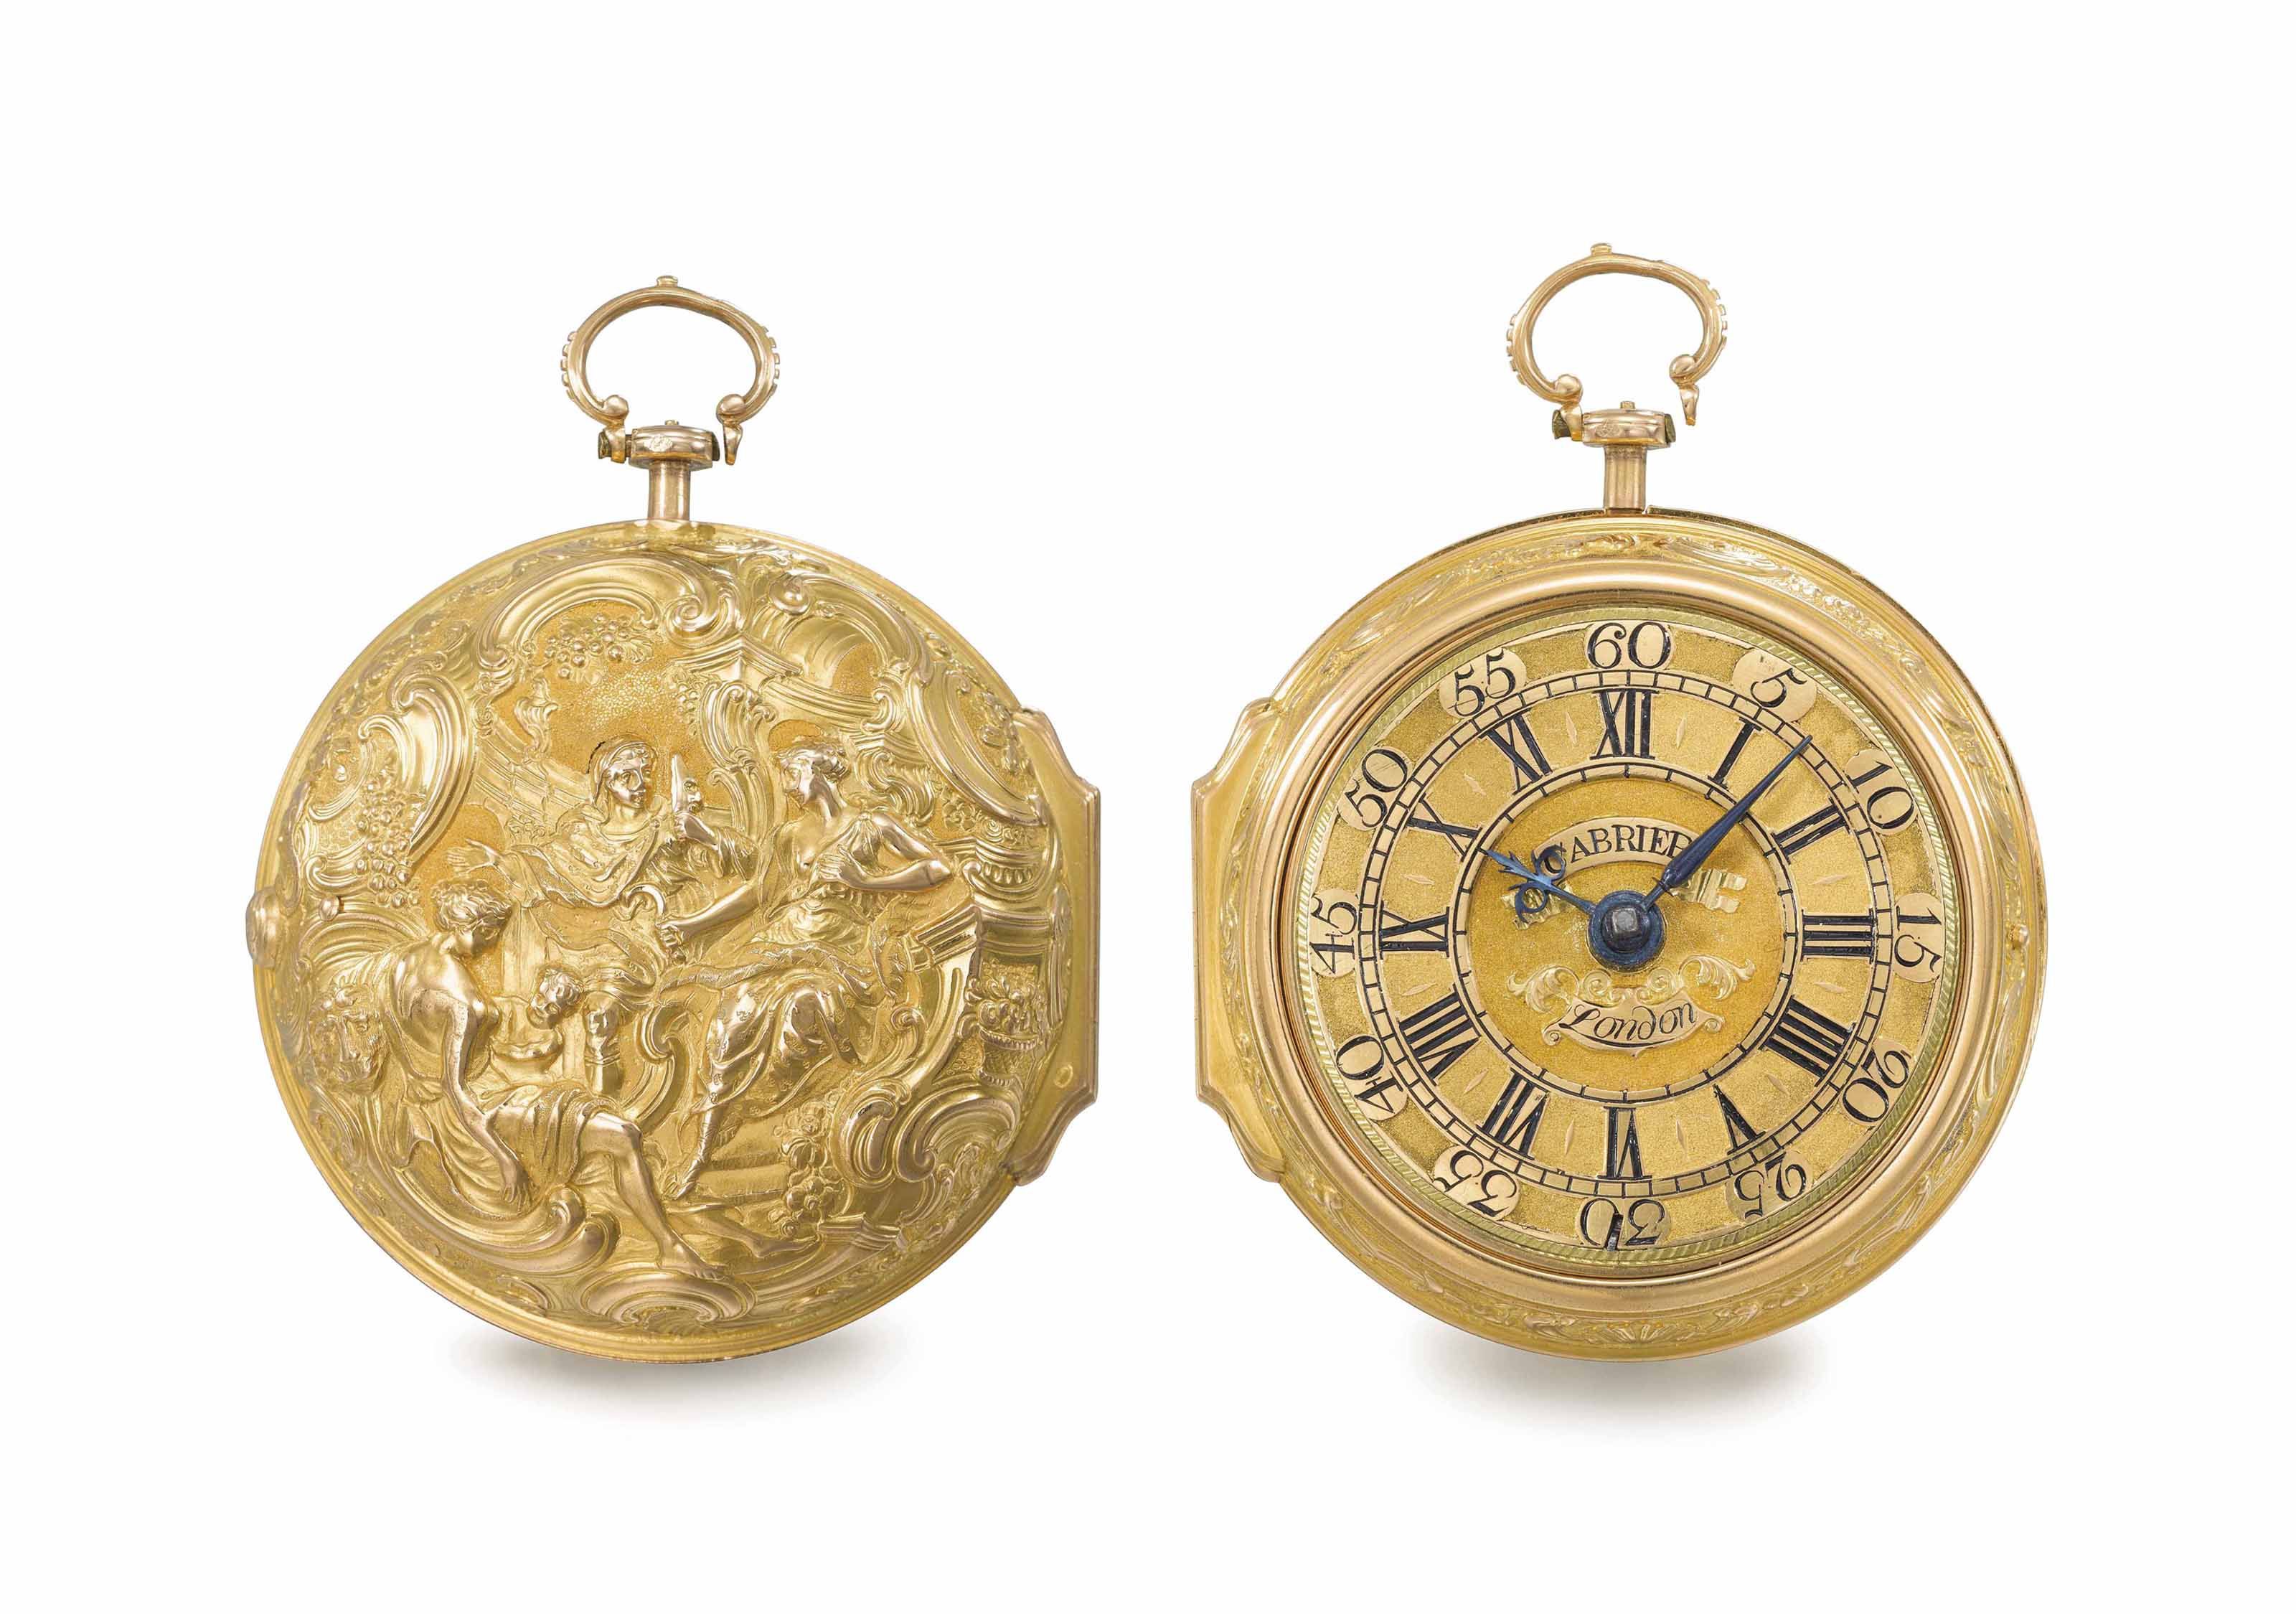 Cabrier. A fine 18K gold pair case verge watch, repoussé scene attributed to George Michael Moser, with outer protective case